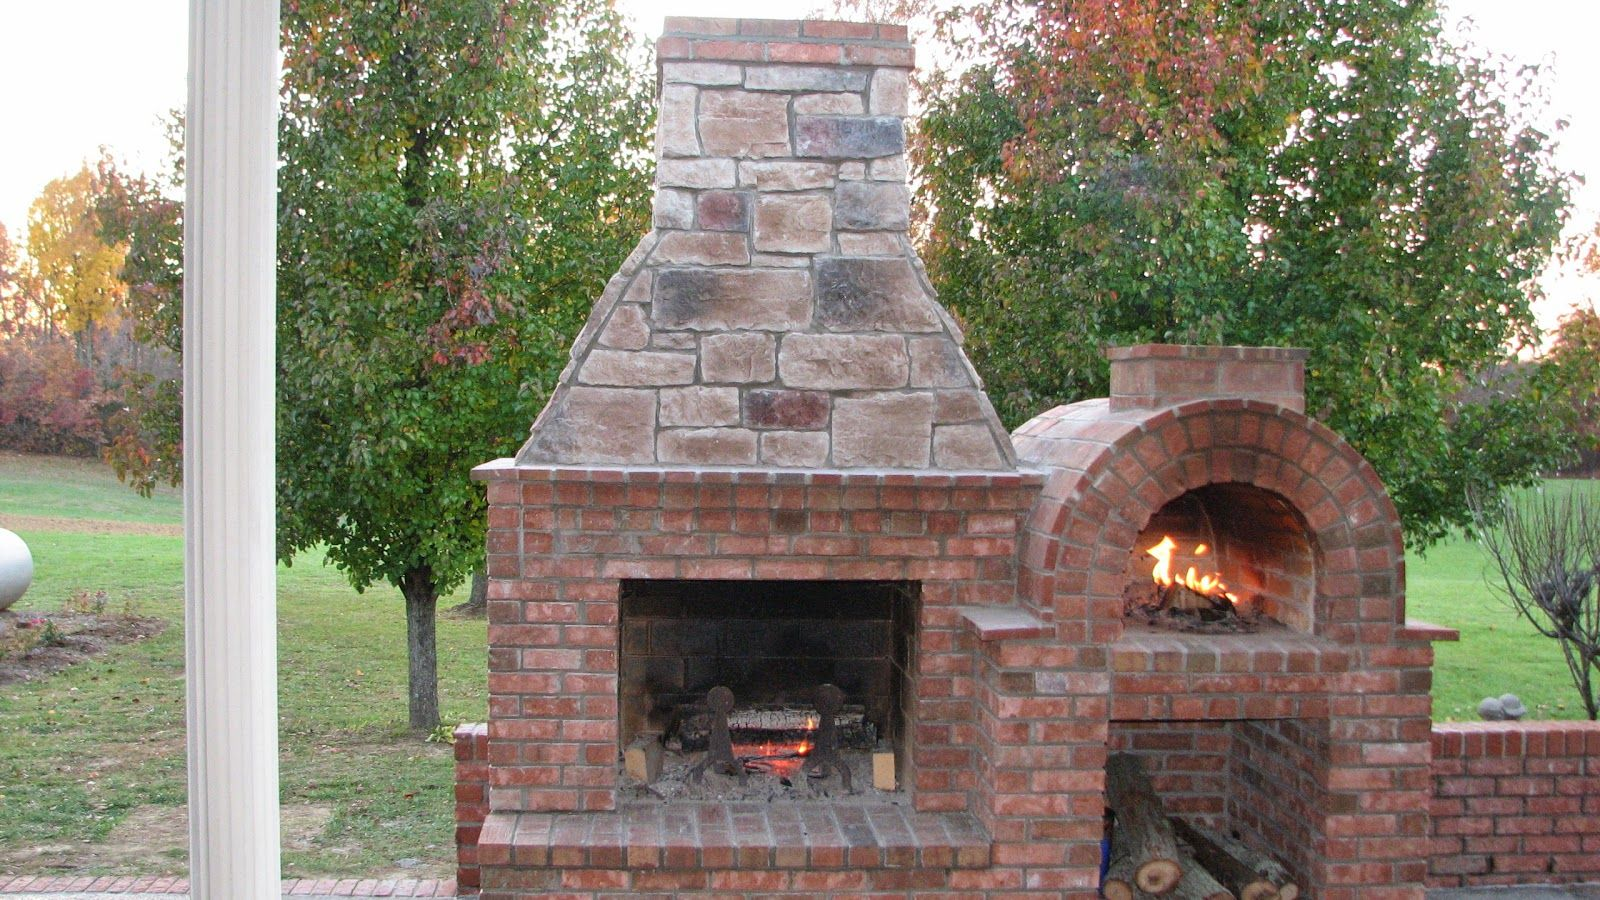 Outdoor Brick Fireplace With Oven Fireplace Design Ideas Diy Outdoor Fireplace Outdoor Wood Fireplace Pizza Oven